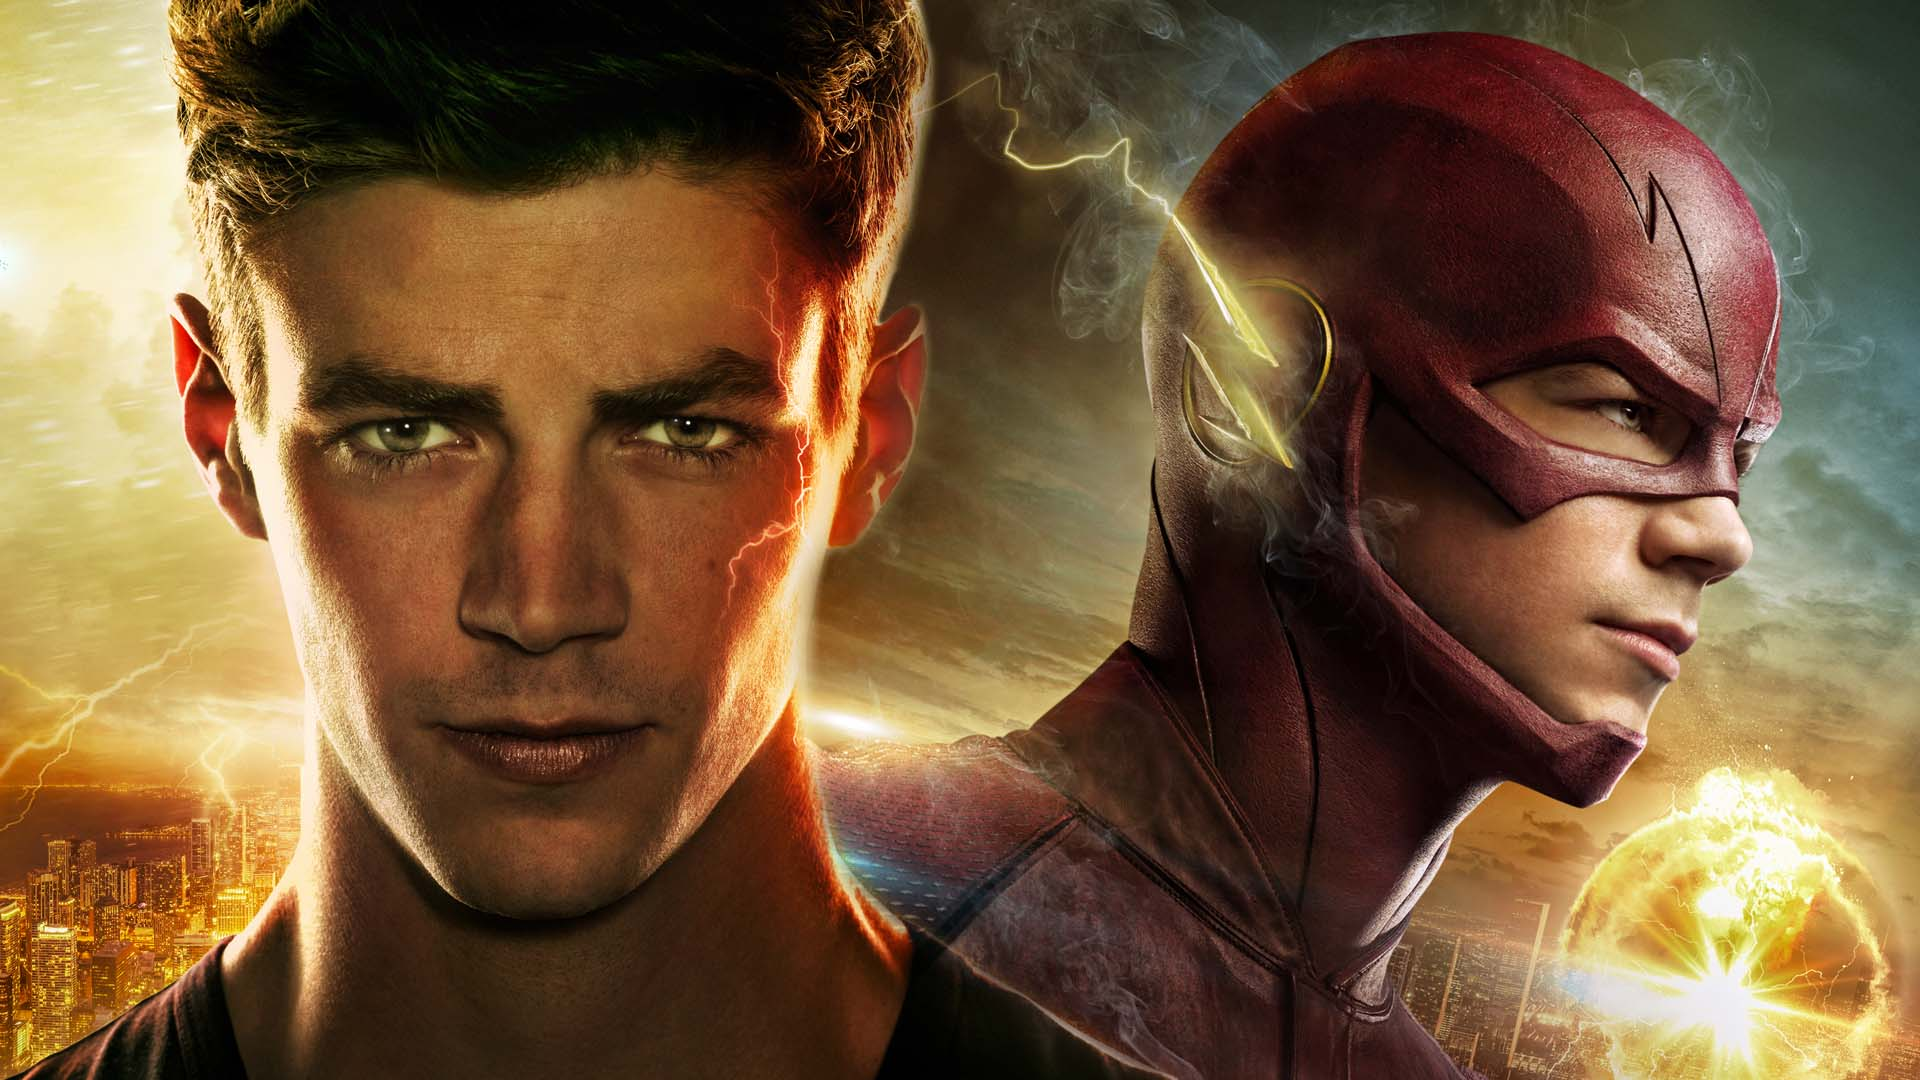 The-Flash-Wallpaper-the-flash-cw-37862537-1920-1080 jpgThe Flash Wallpaper